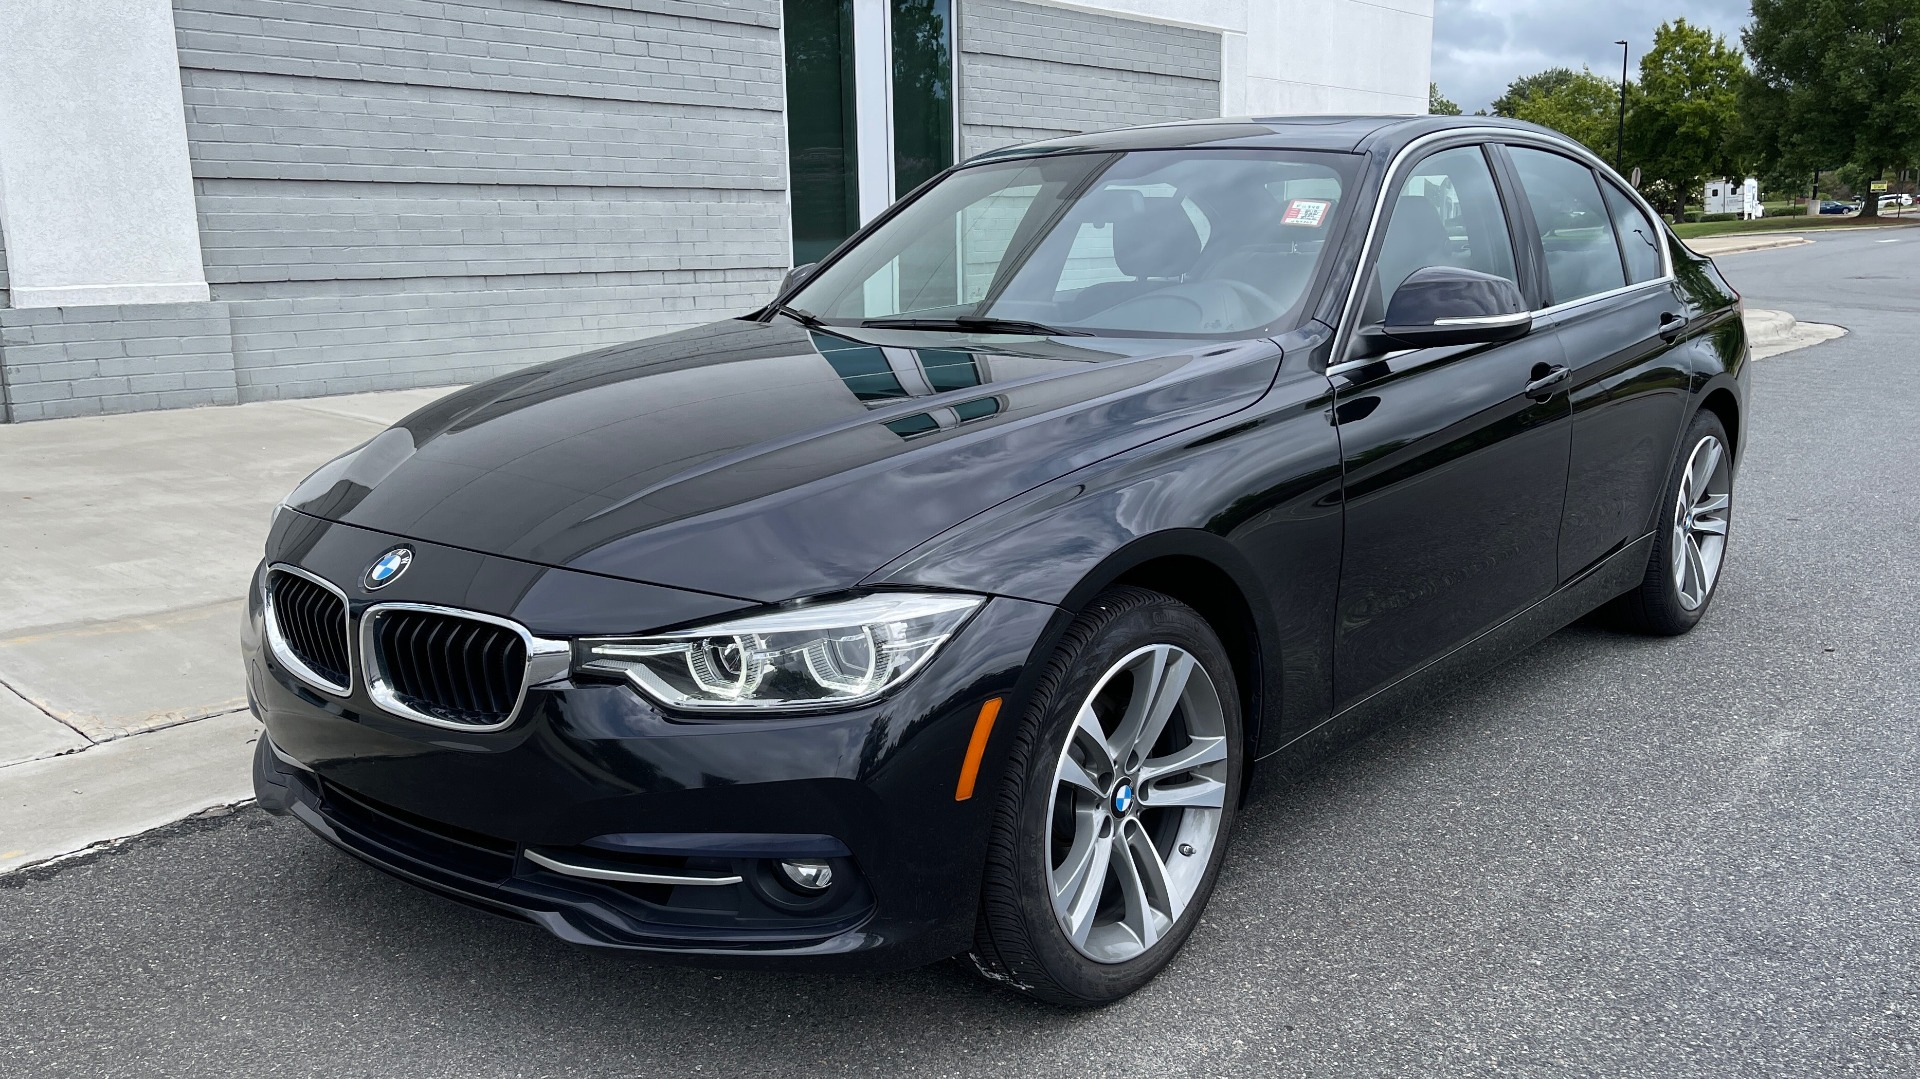 Used 2018 BMW 3 SERIES 330IXDRIVE / NAV / CONV PKG / ABSD / SUNROOF / REARVIEW for sale $29,599 at Formula Imports in Charlotte NC 28227 3